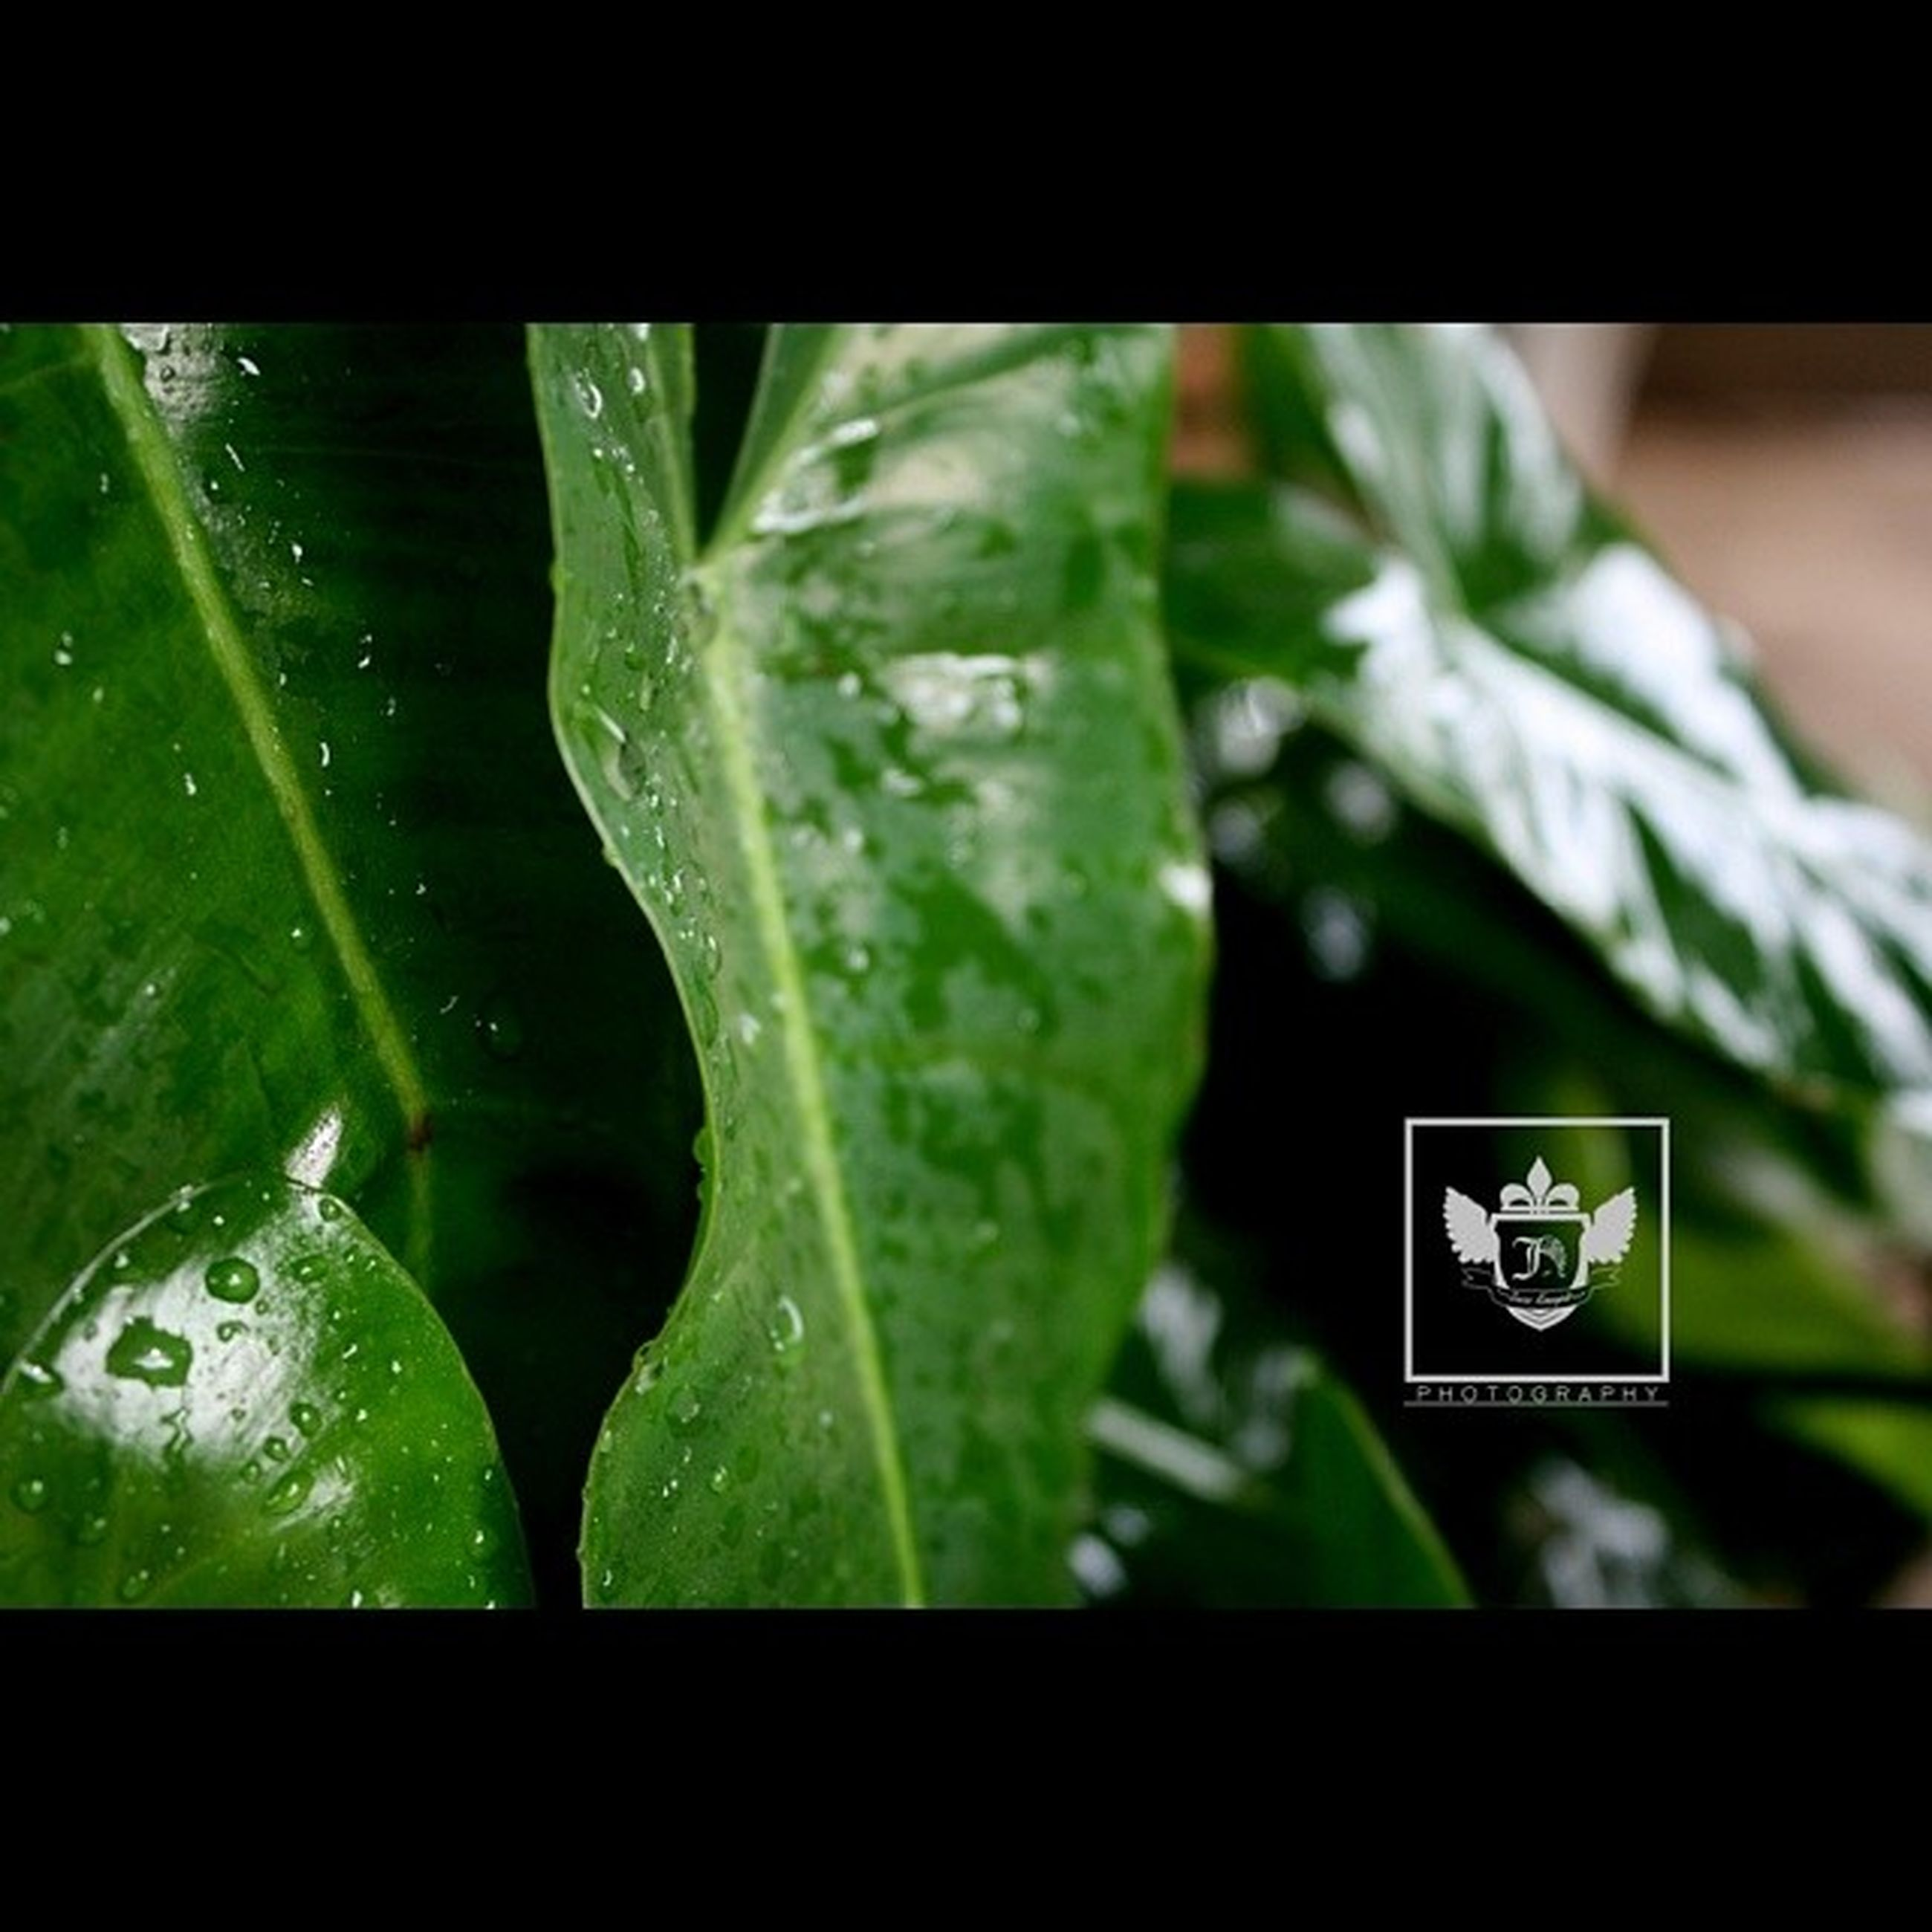 green color, indoors, close-up, leaf, focus on foreground, selective focus, green, drop, hanging, still life, day, no people, plant, table, part of, detail, high angle view, auto post production filter, growth, wet